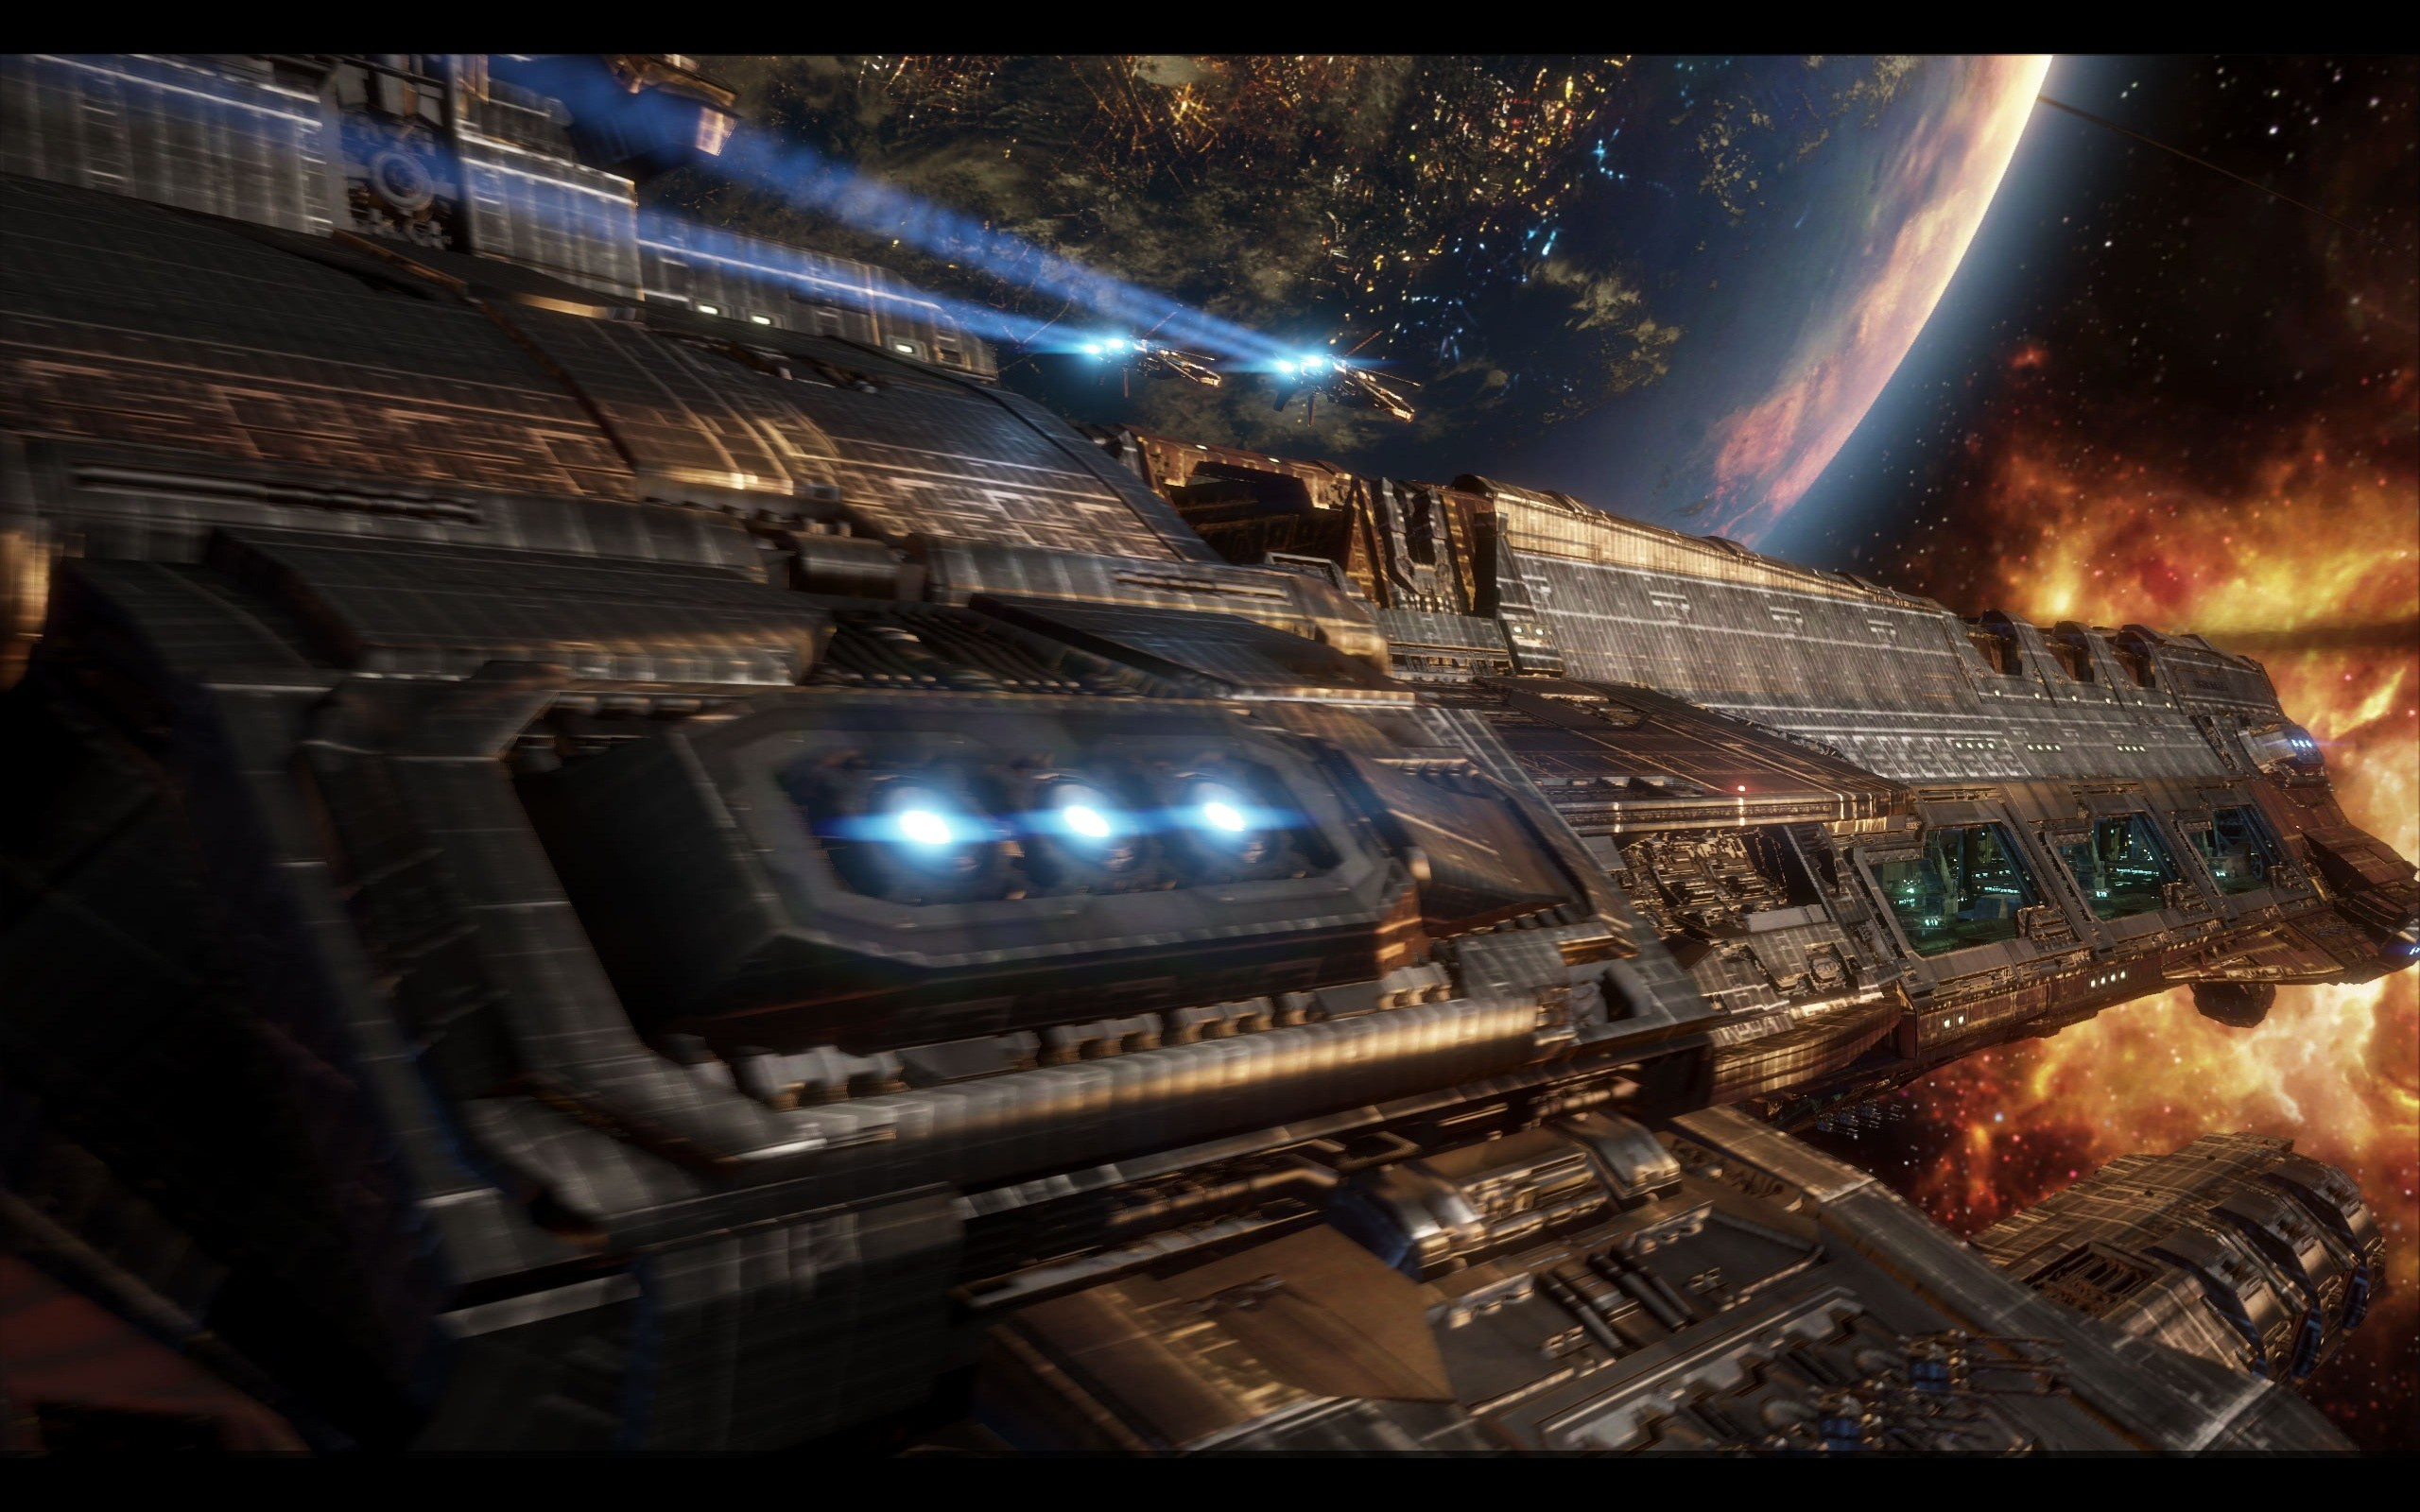 Star wars outer space spaceships vehicles wallpaper | .